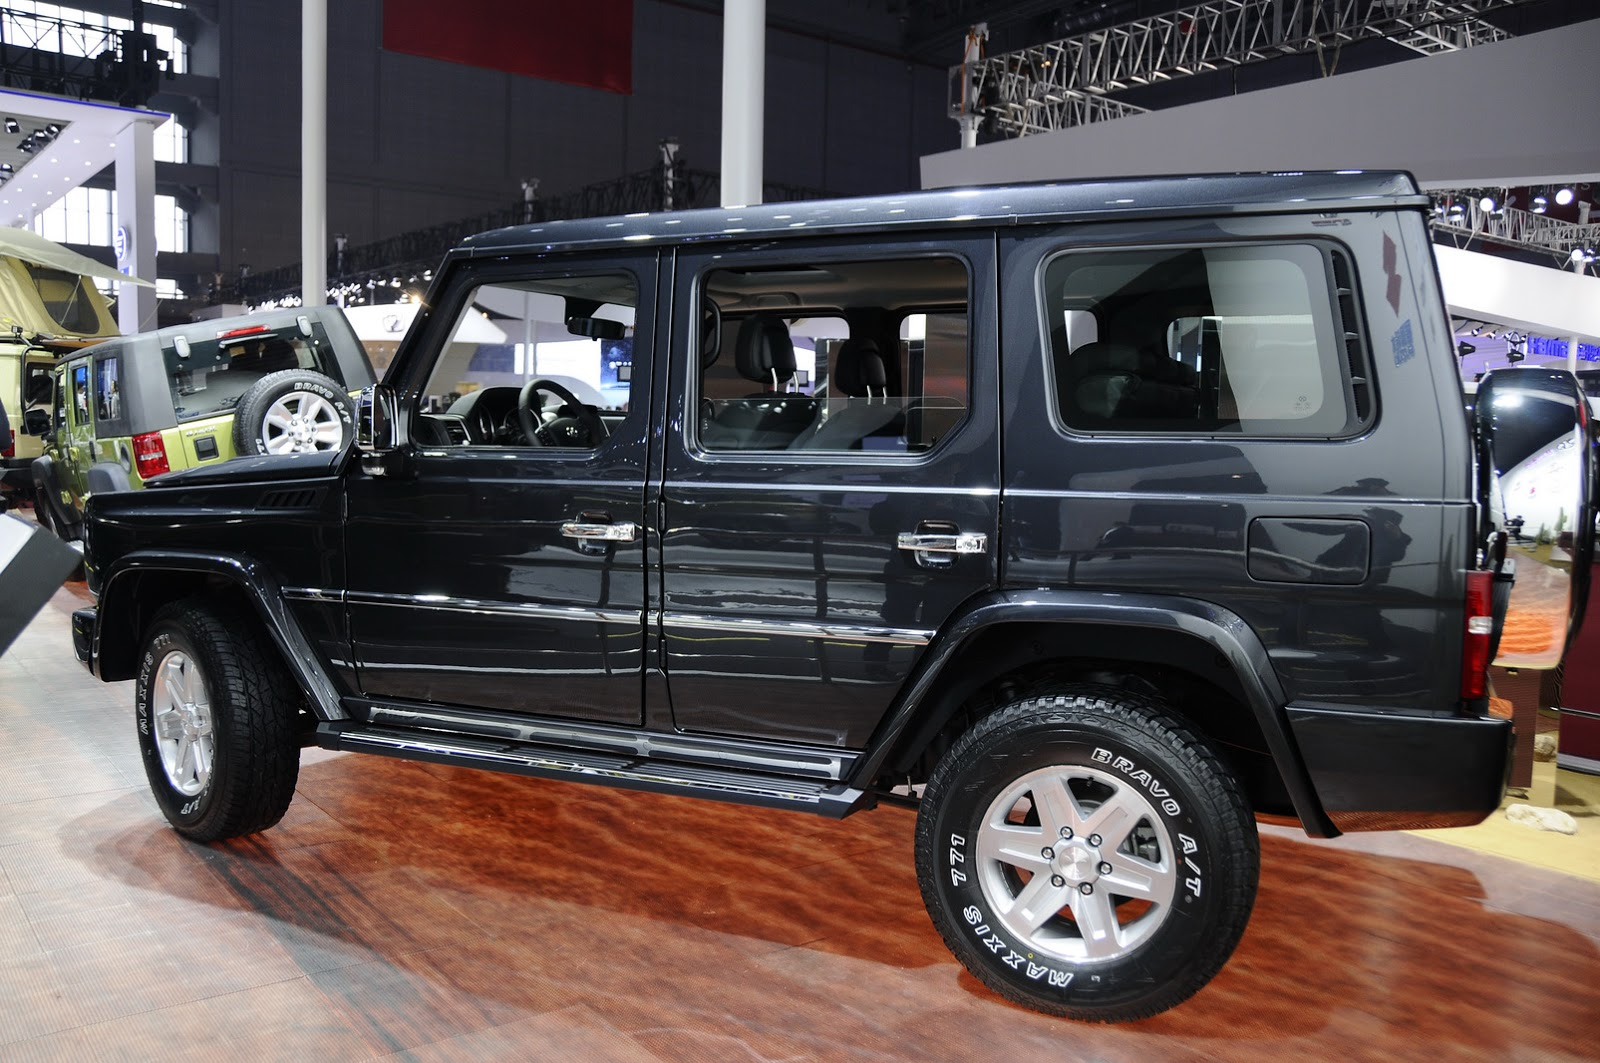 New Baic Bj80c When Mercedes Chinese Partner Cloned Its G Class